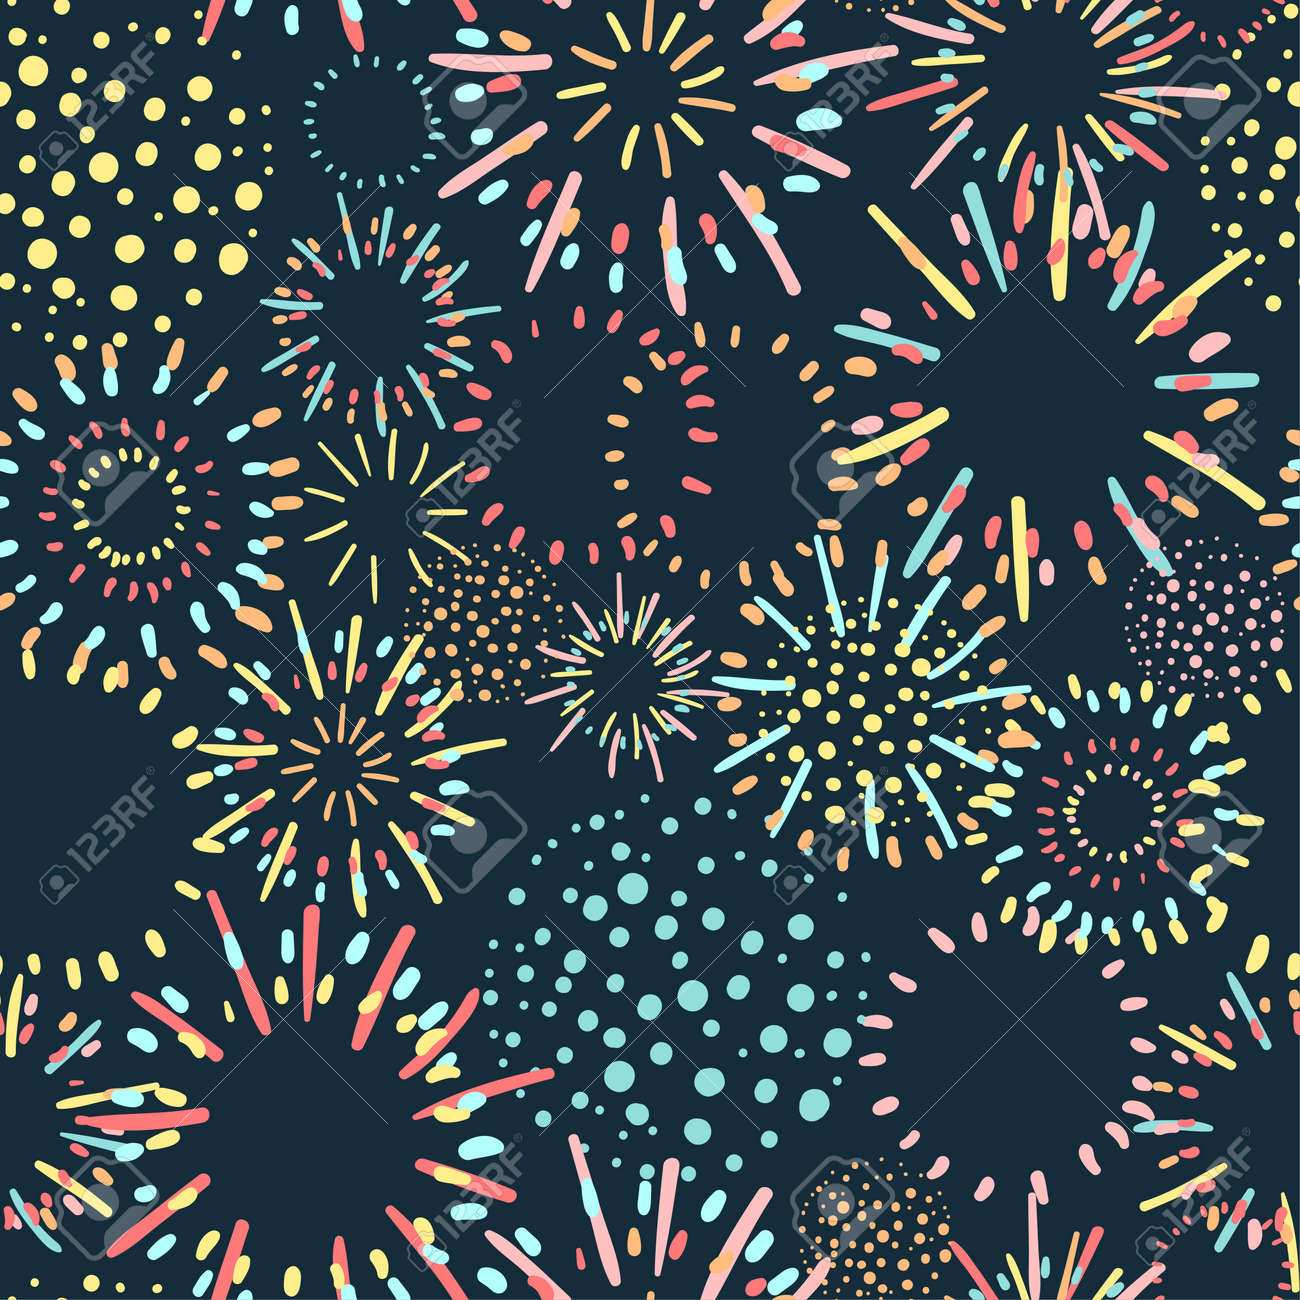 Seamless colorful background with fireworks on dark background - 165808987